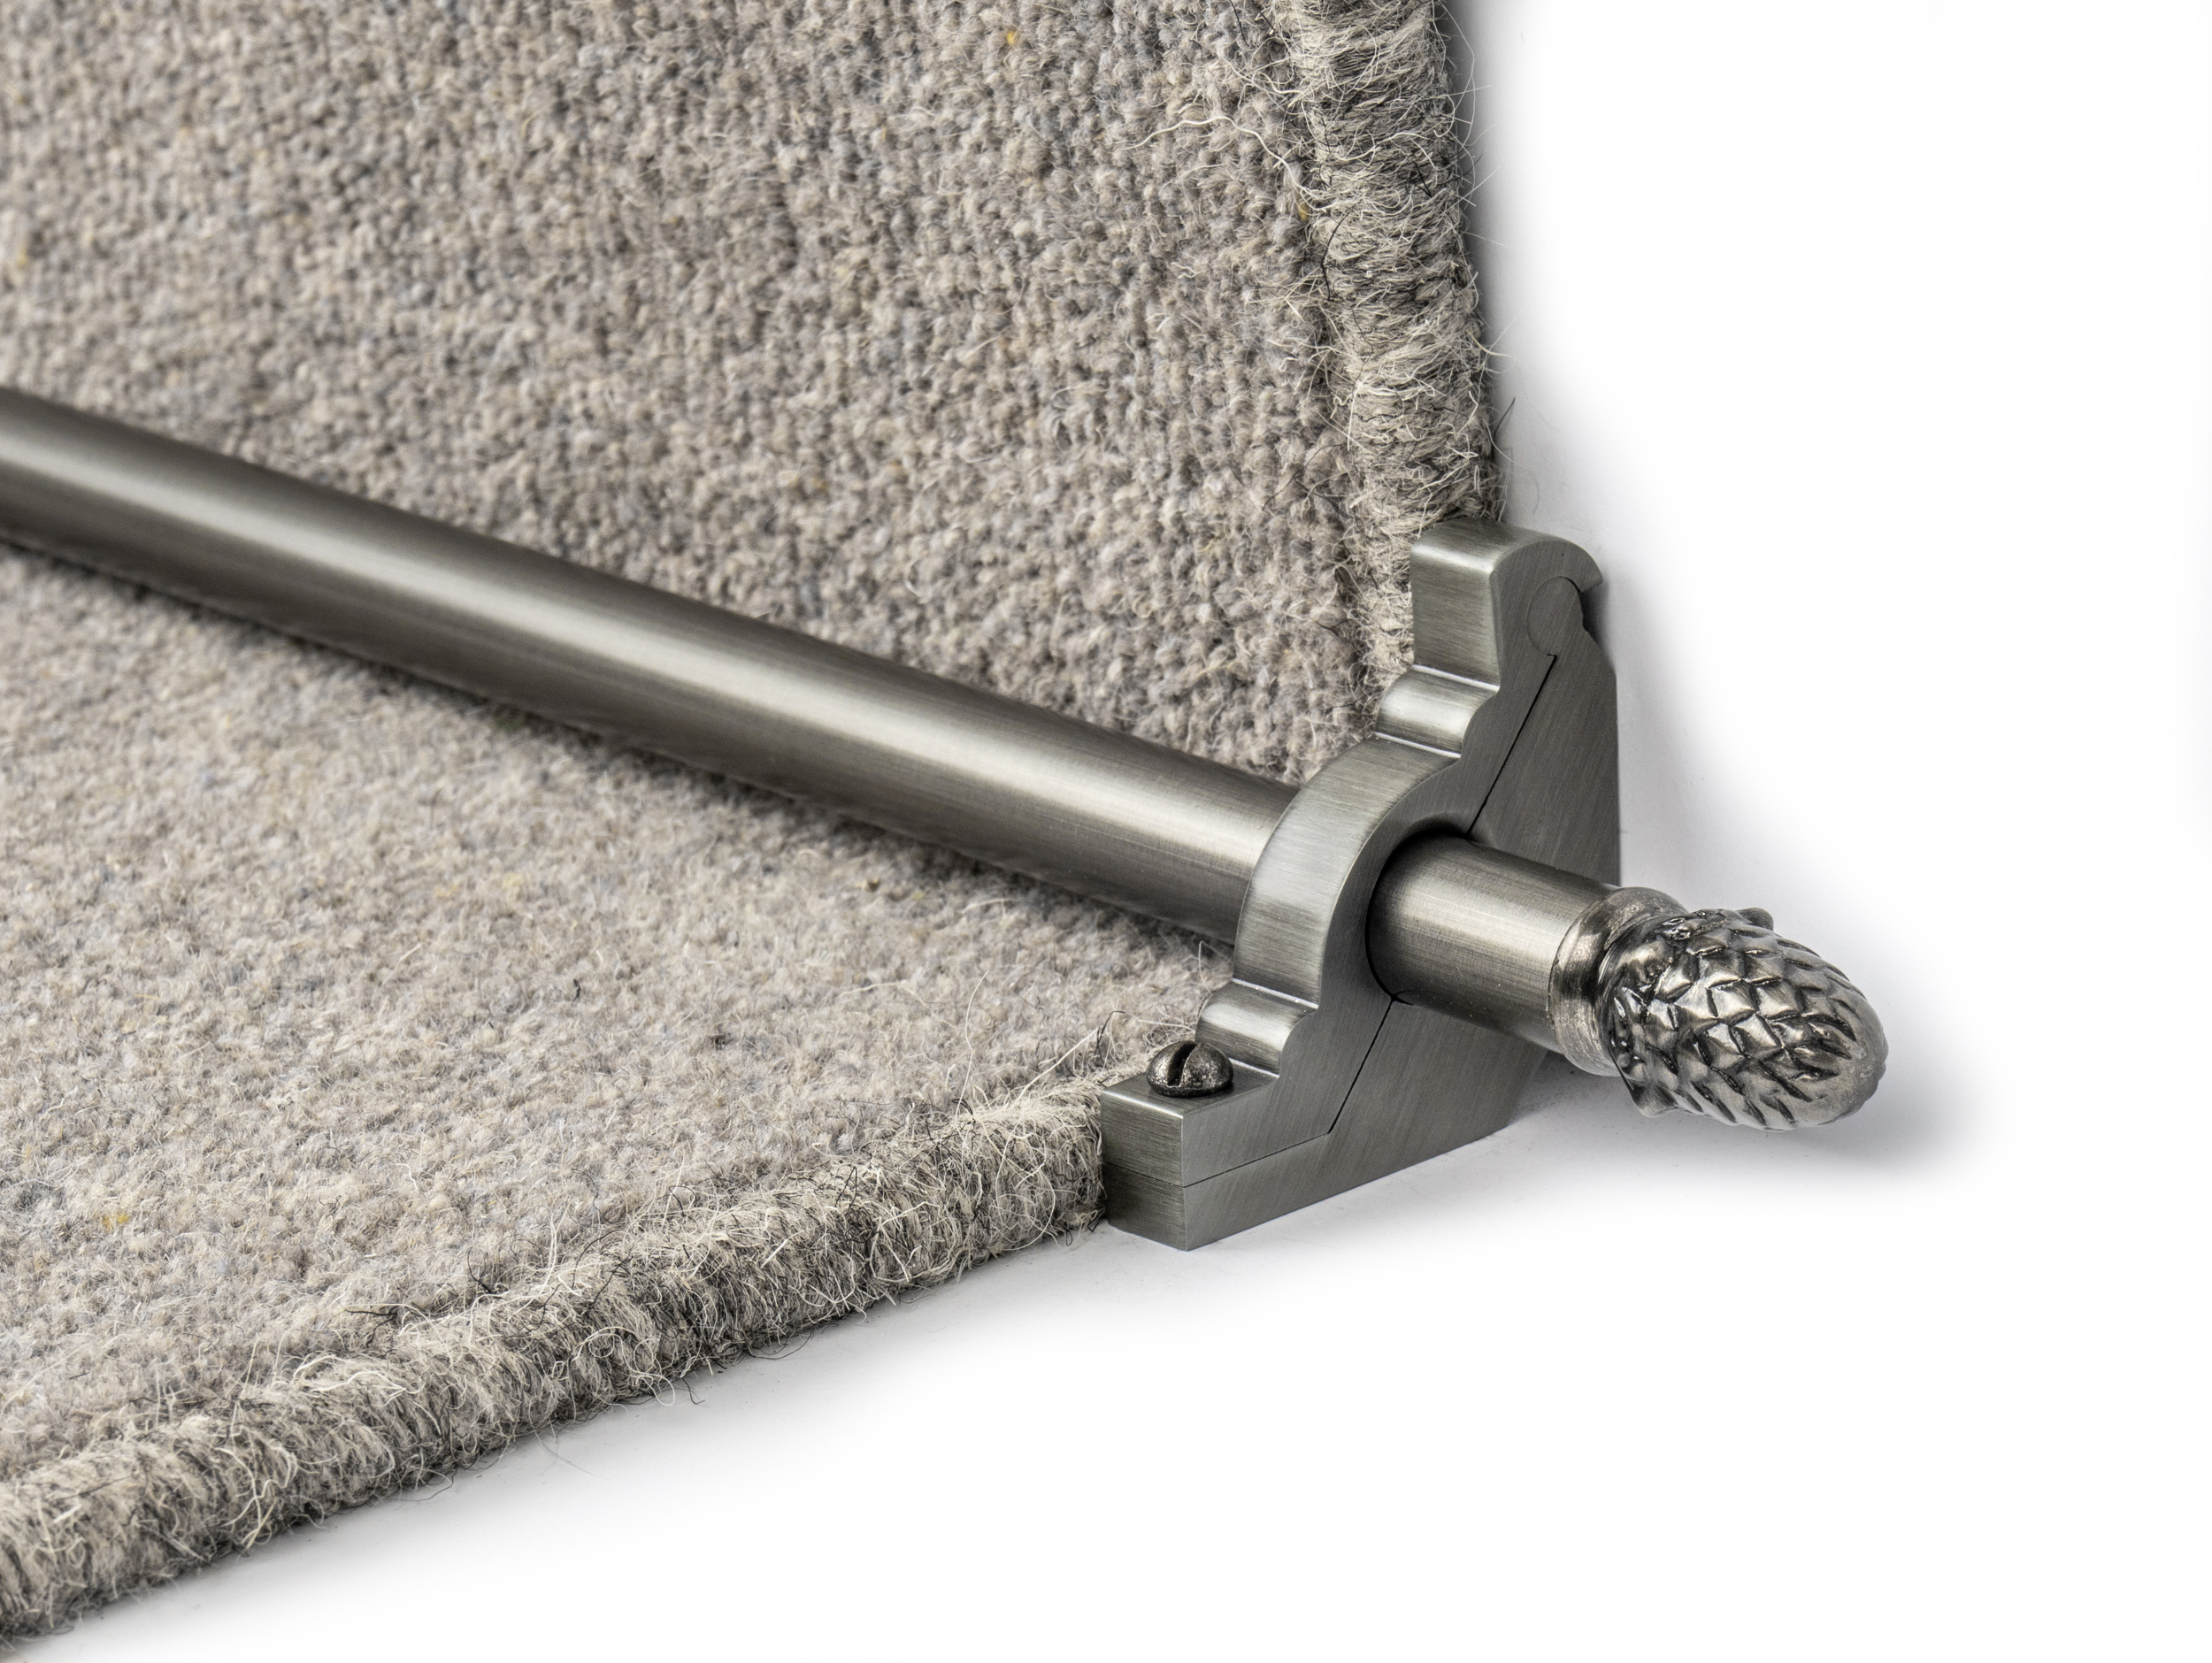 stairrods-brushed-pewter-country-sherwood-plain.jpg